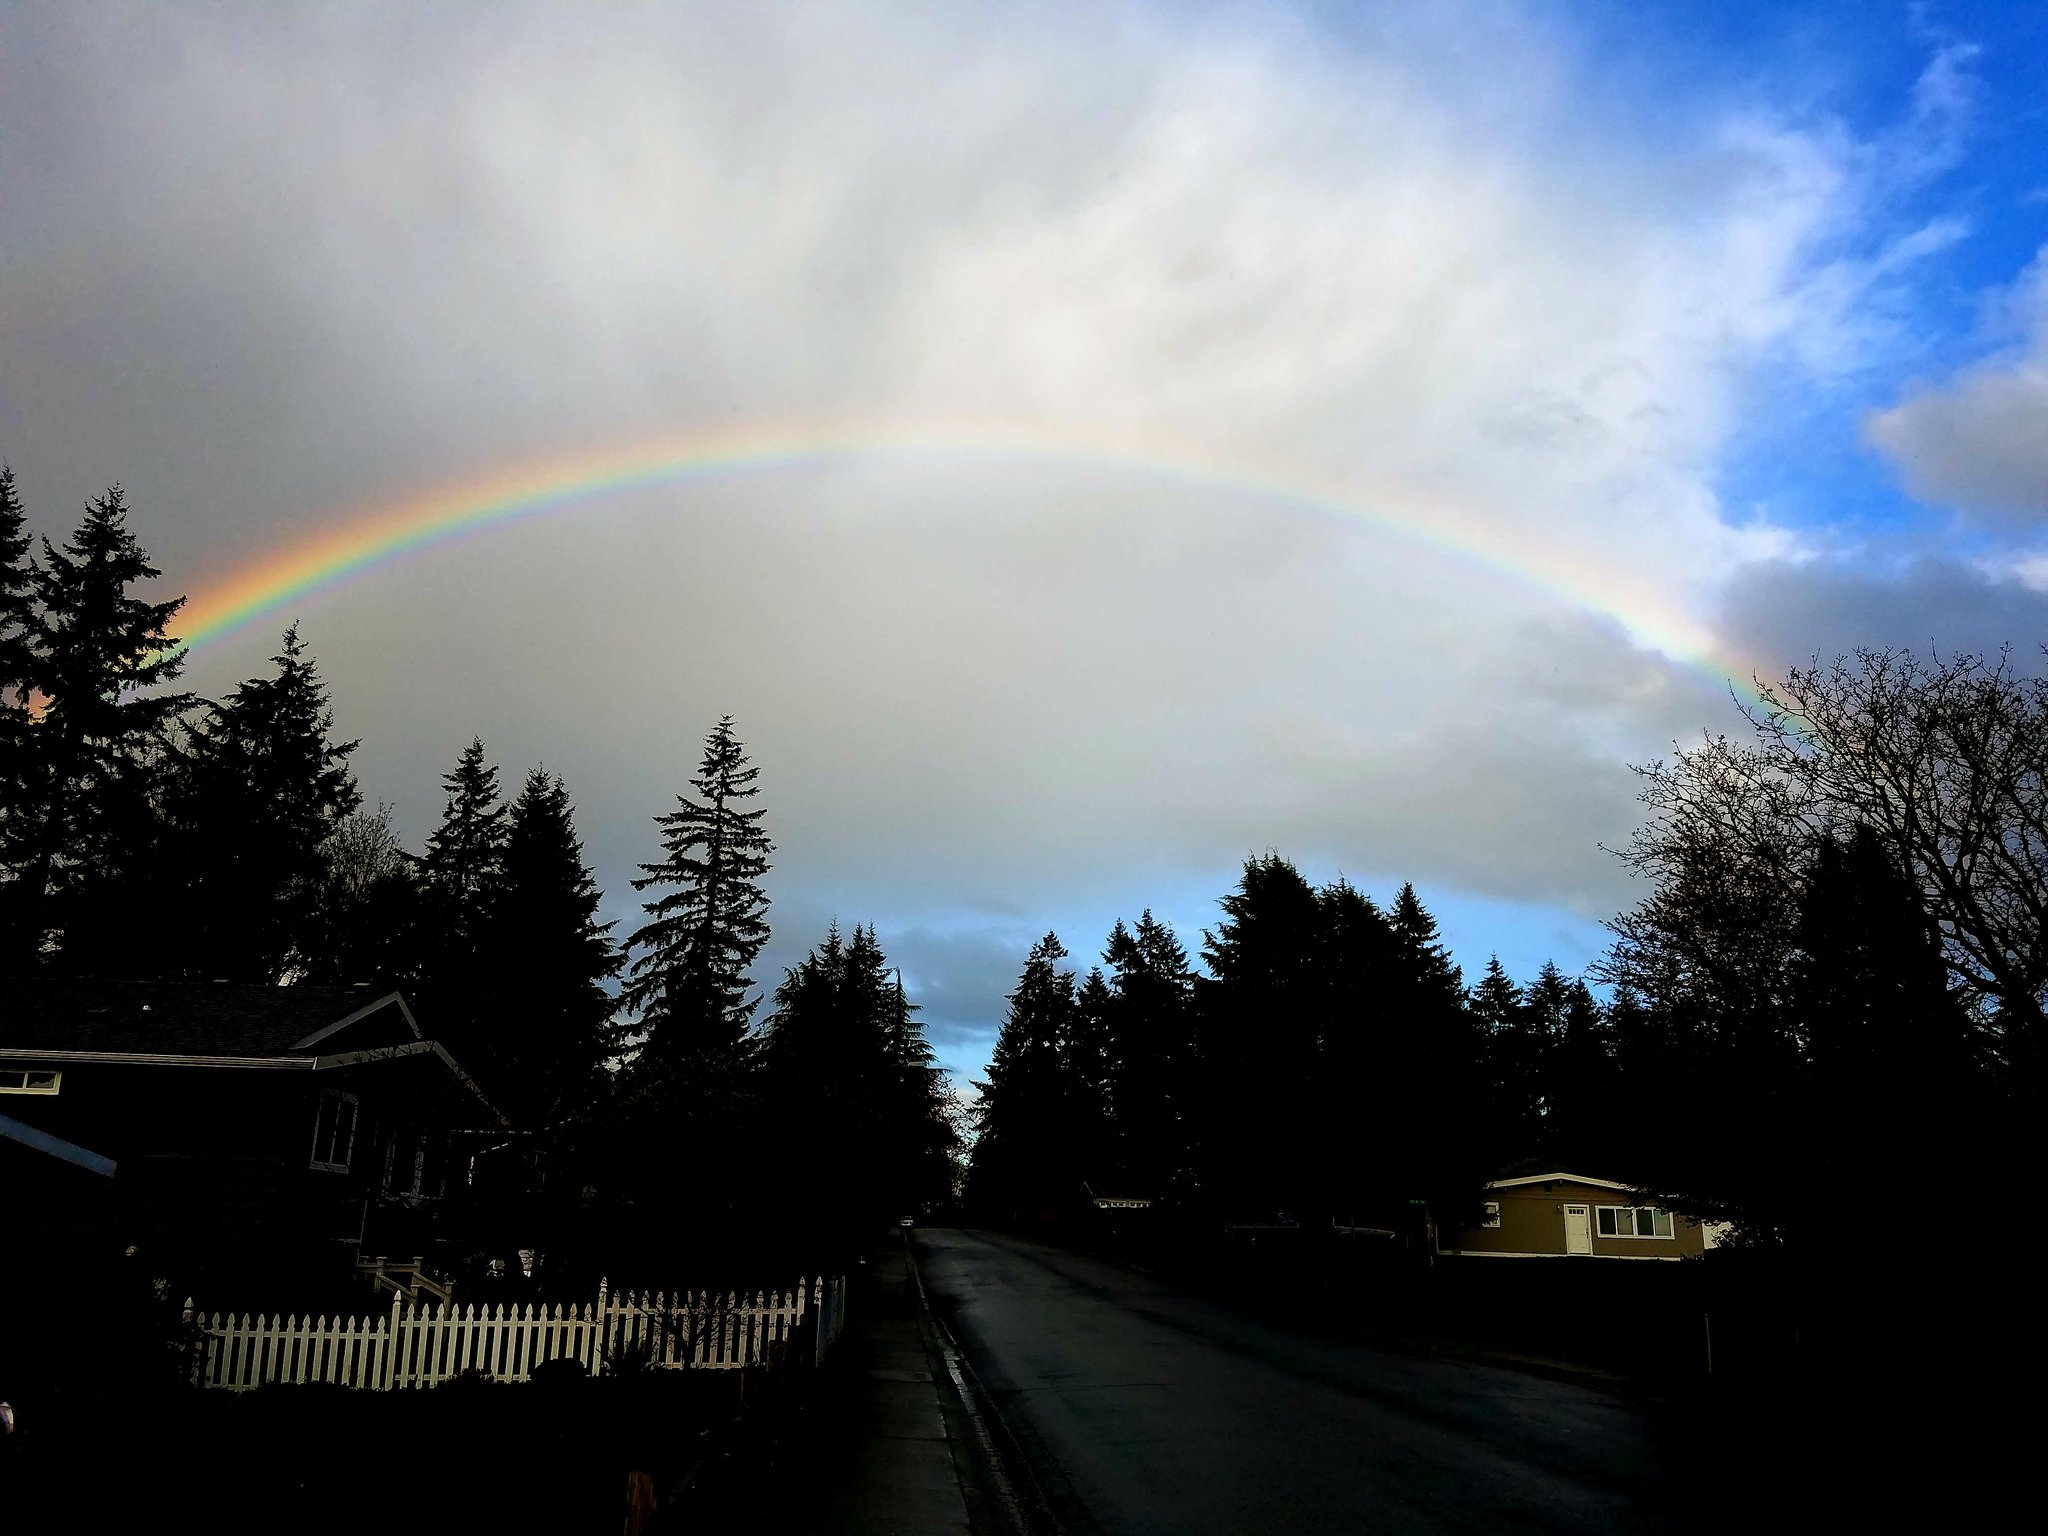 A rainbow arcs across the sky in the Finn Hill neighborhood in Kirkland, Wash., Tuesday, April 18, 2017. (Photo: Jordan Riley)